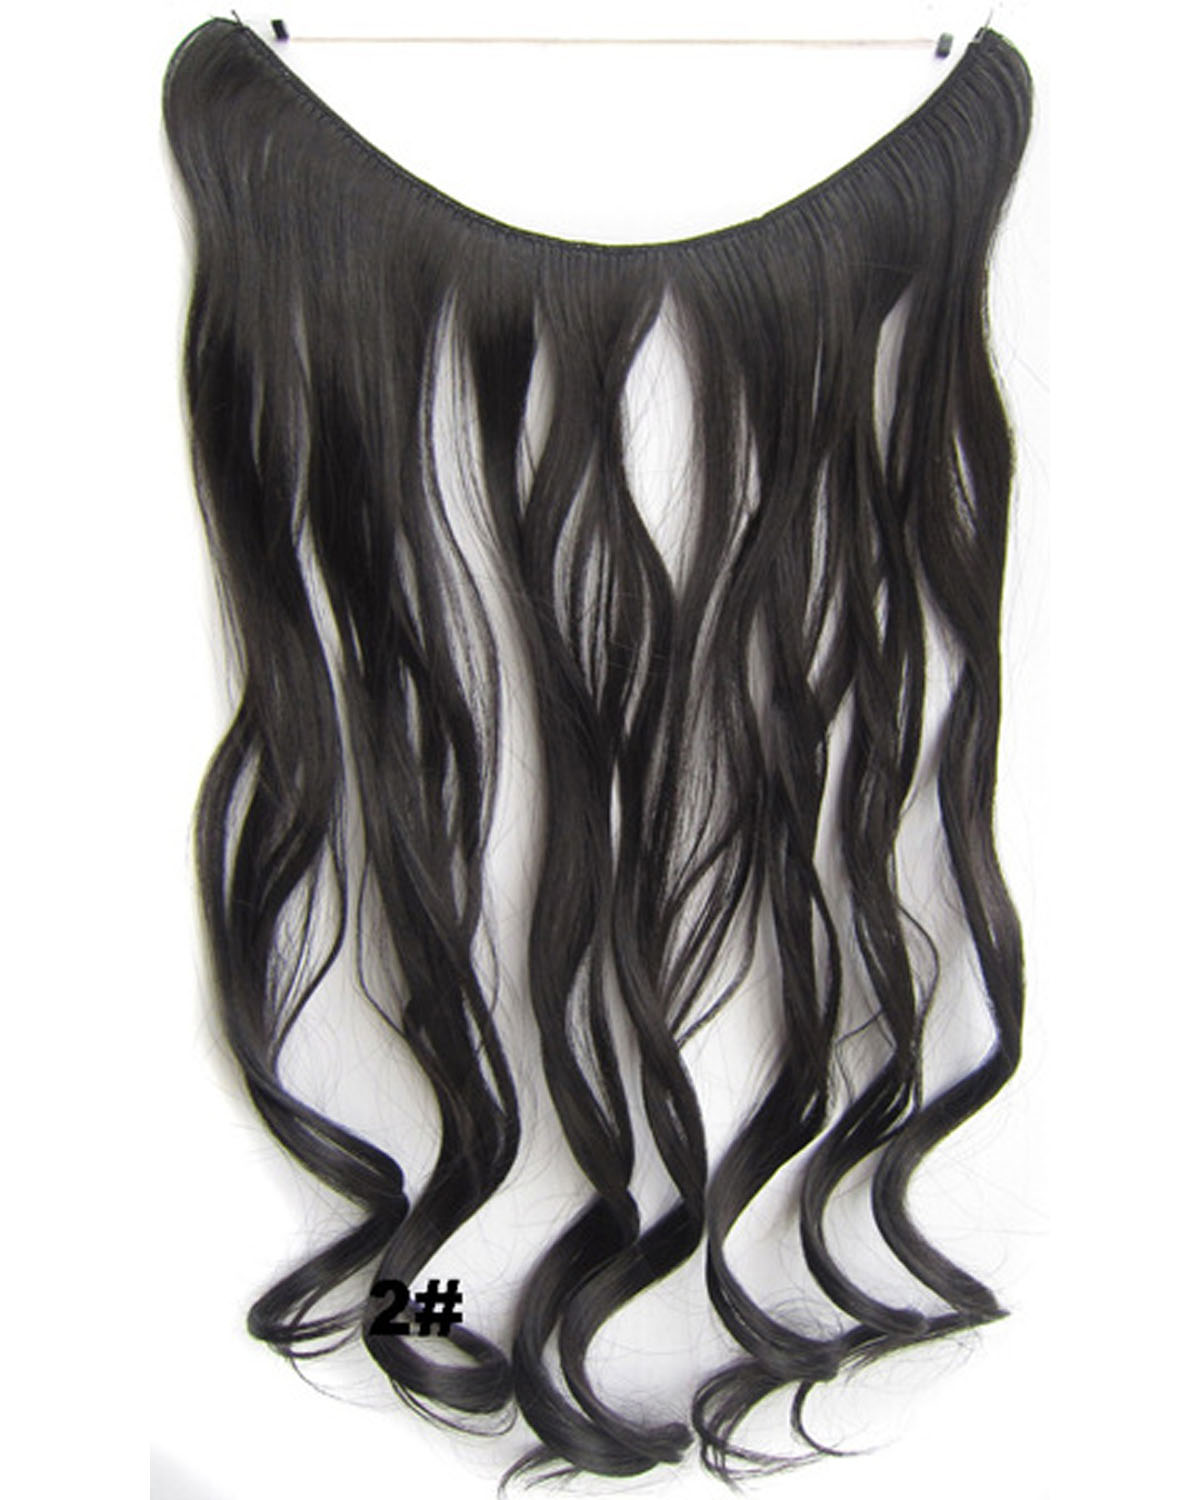 22 Inch Graceful Curly and Long Miracle One Piece Miracle Wire Flip in Synthetic Hair Extension 2#